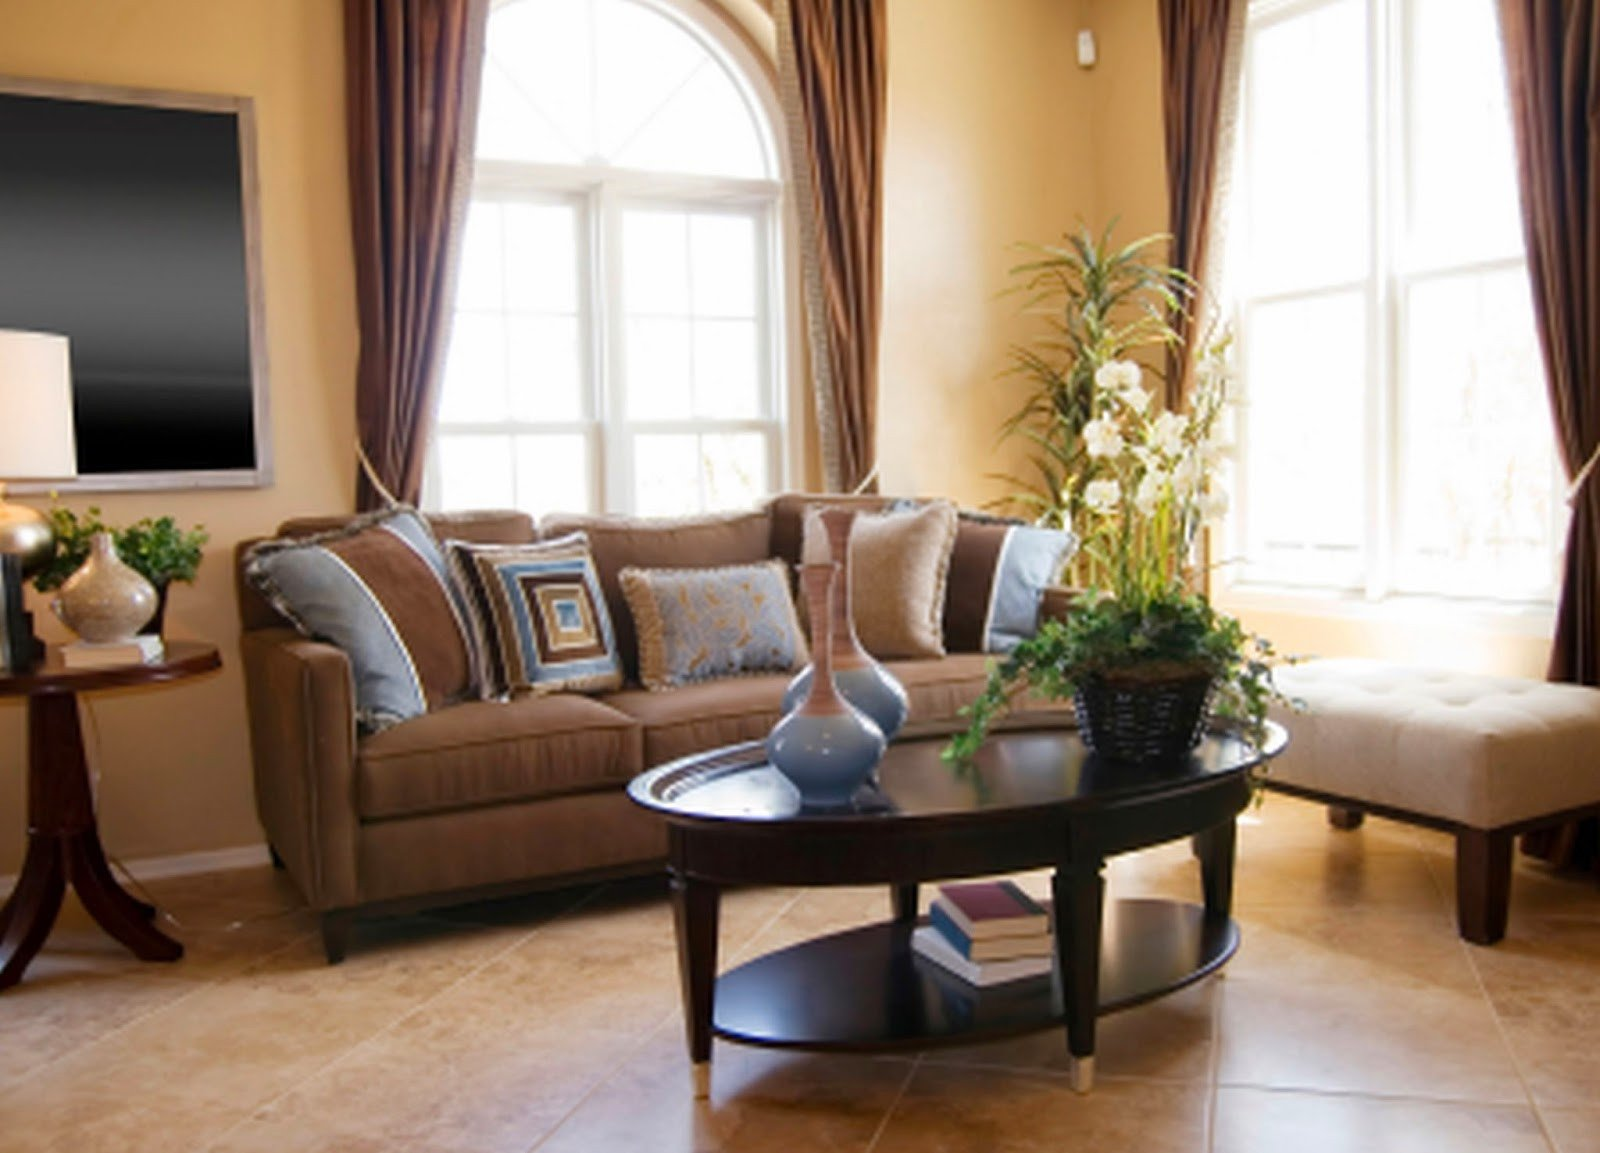 Brown Living Room Decorating Ideas 2 Living Room Decor Ideas Brown Leather sofa